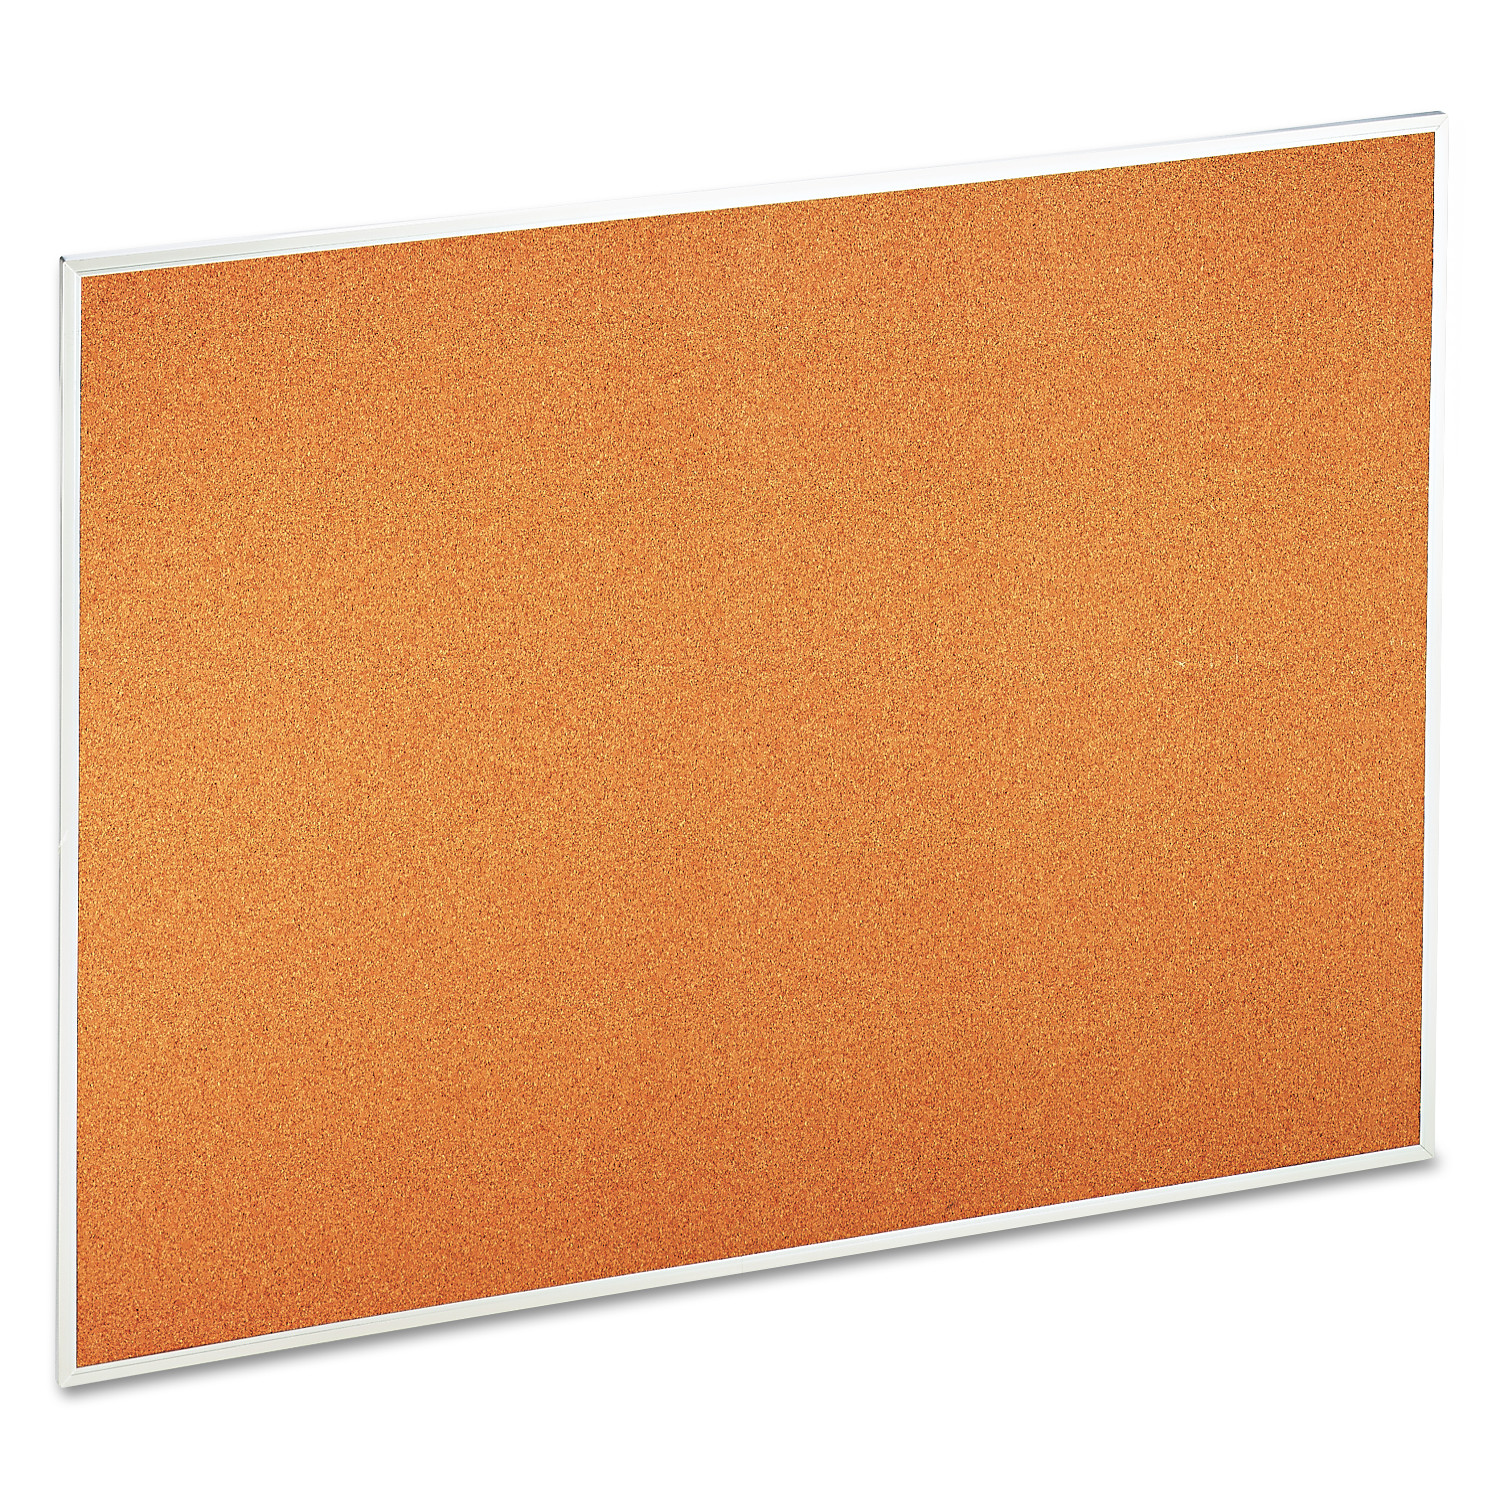 "Universal Natural Cork Bulletin Board, 48"" x 36"", Satin-Finished Aluminum Frame"